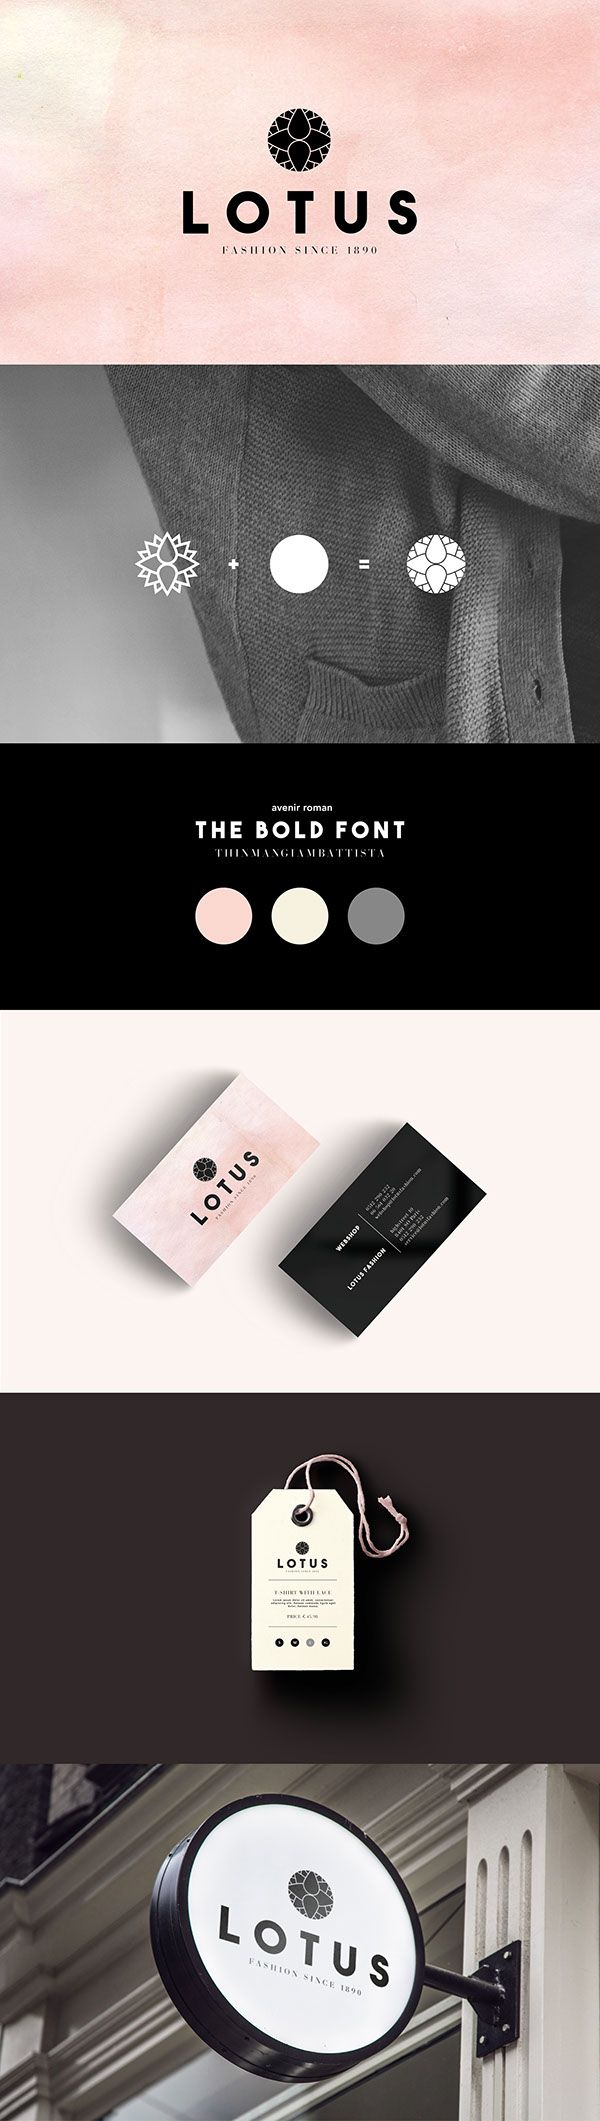 Really like this branding! It's nice that the lines depicting the flower are so delicate while the type is so bold.